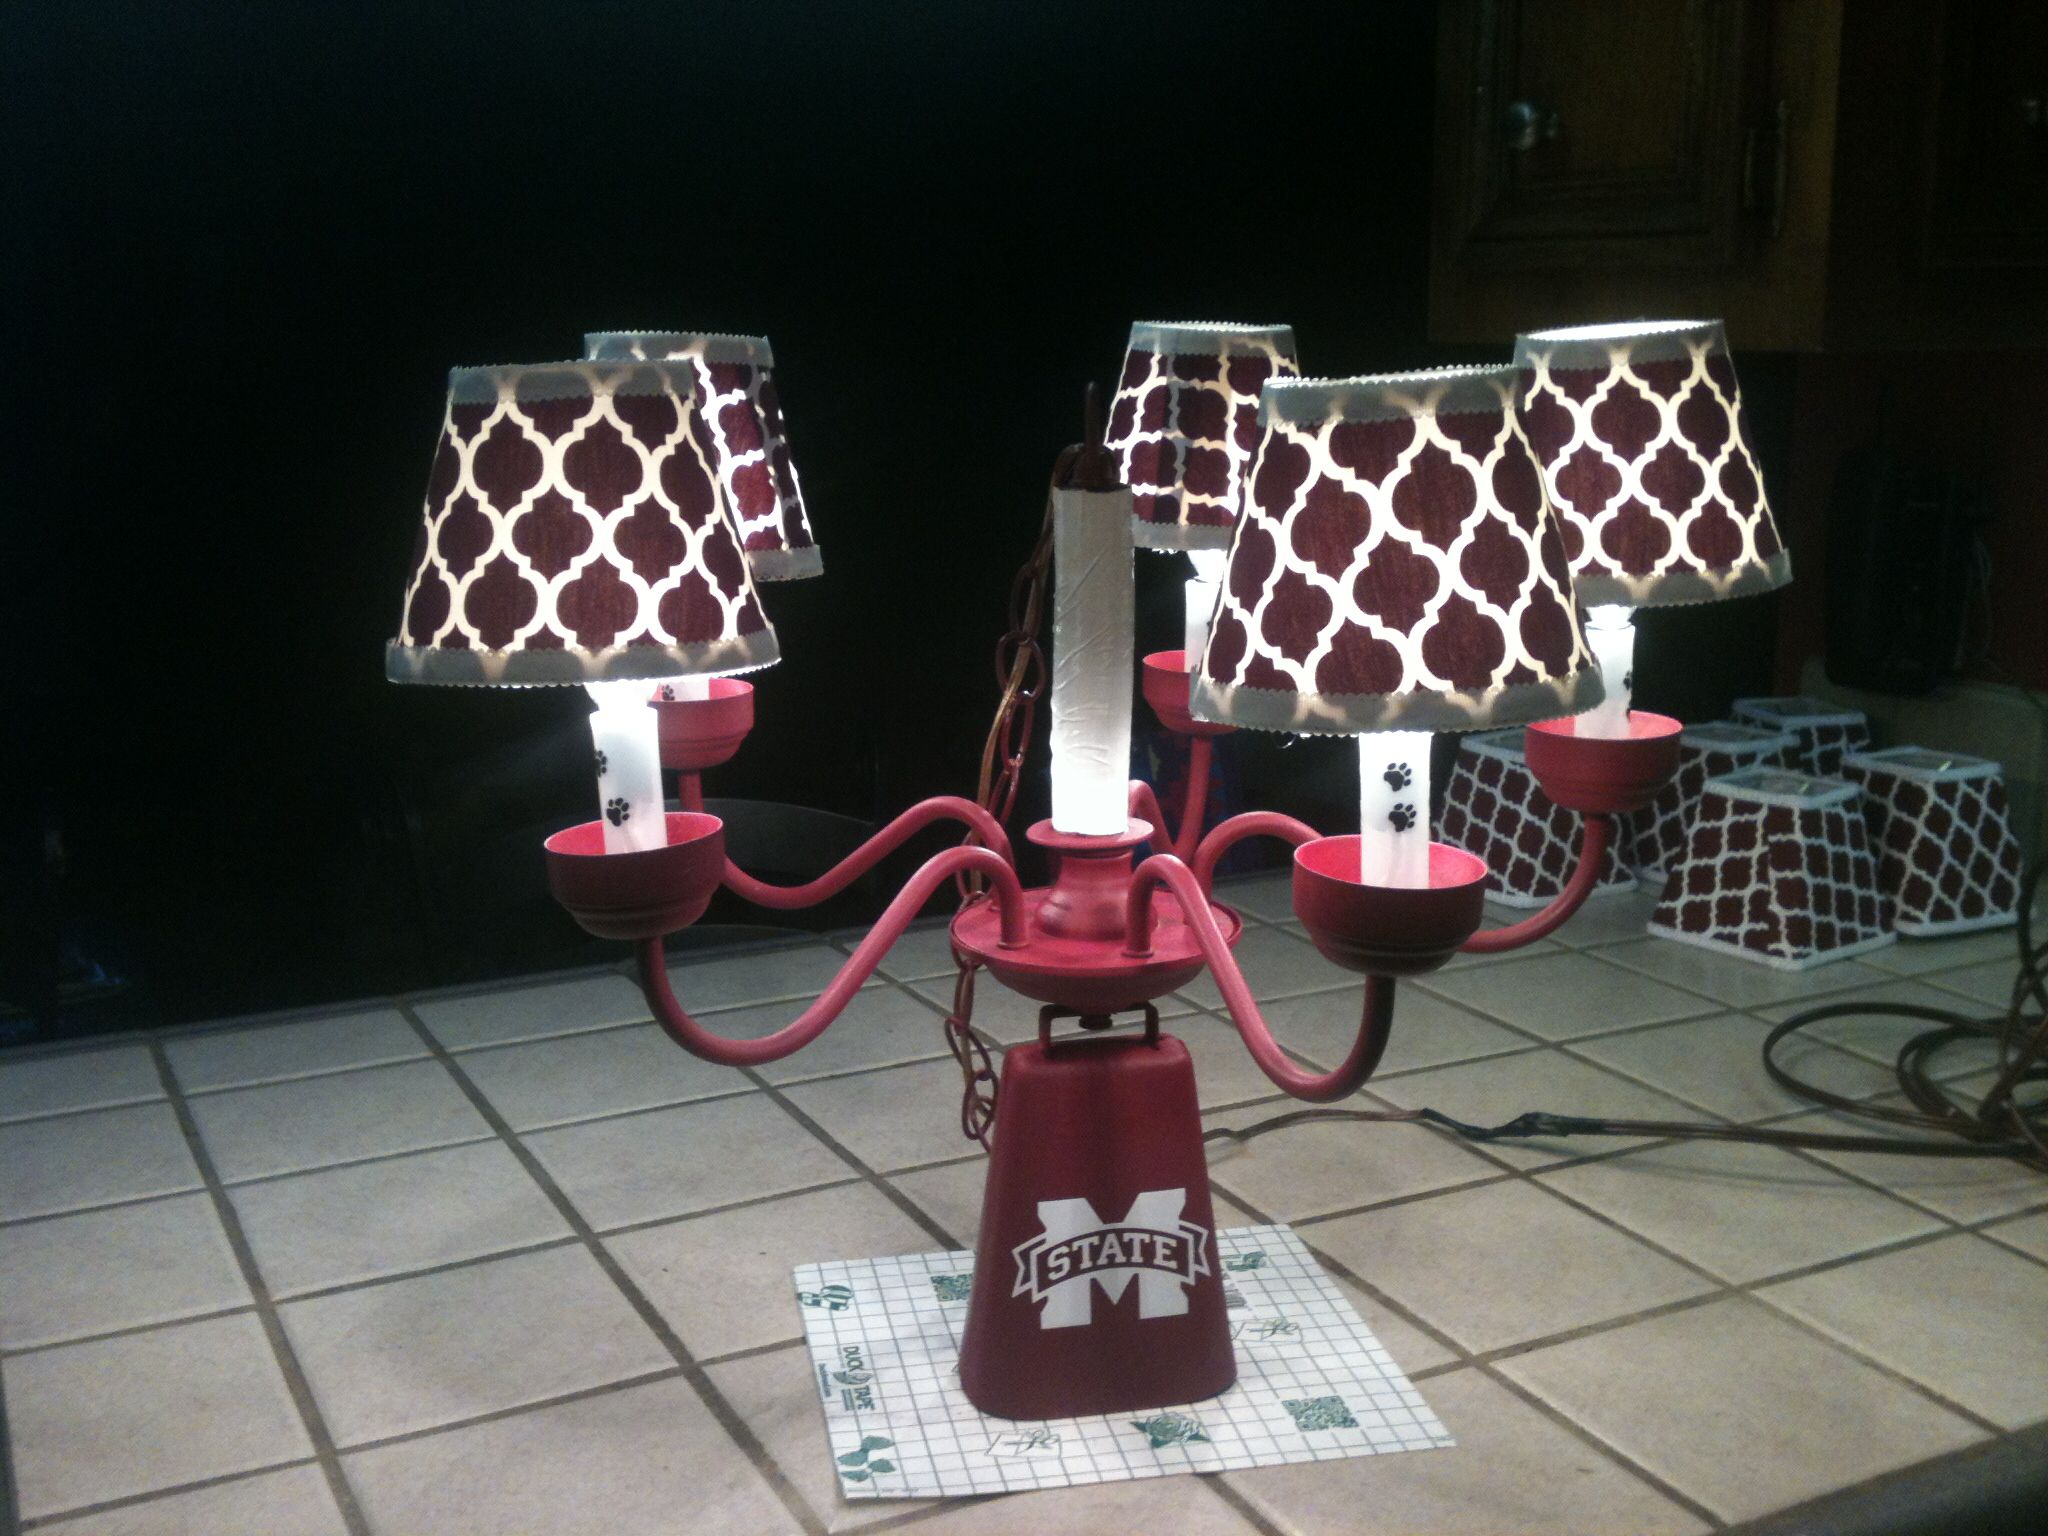 Msu tailgate chandelier hail state tailgate ideas pinterest msu tailgate chandelier hail state arubaitofo Gallery